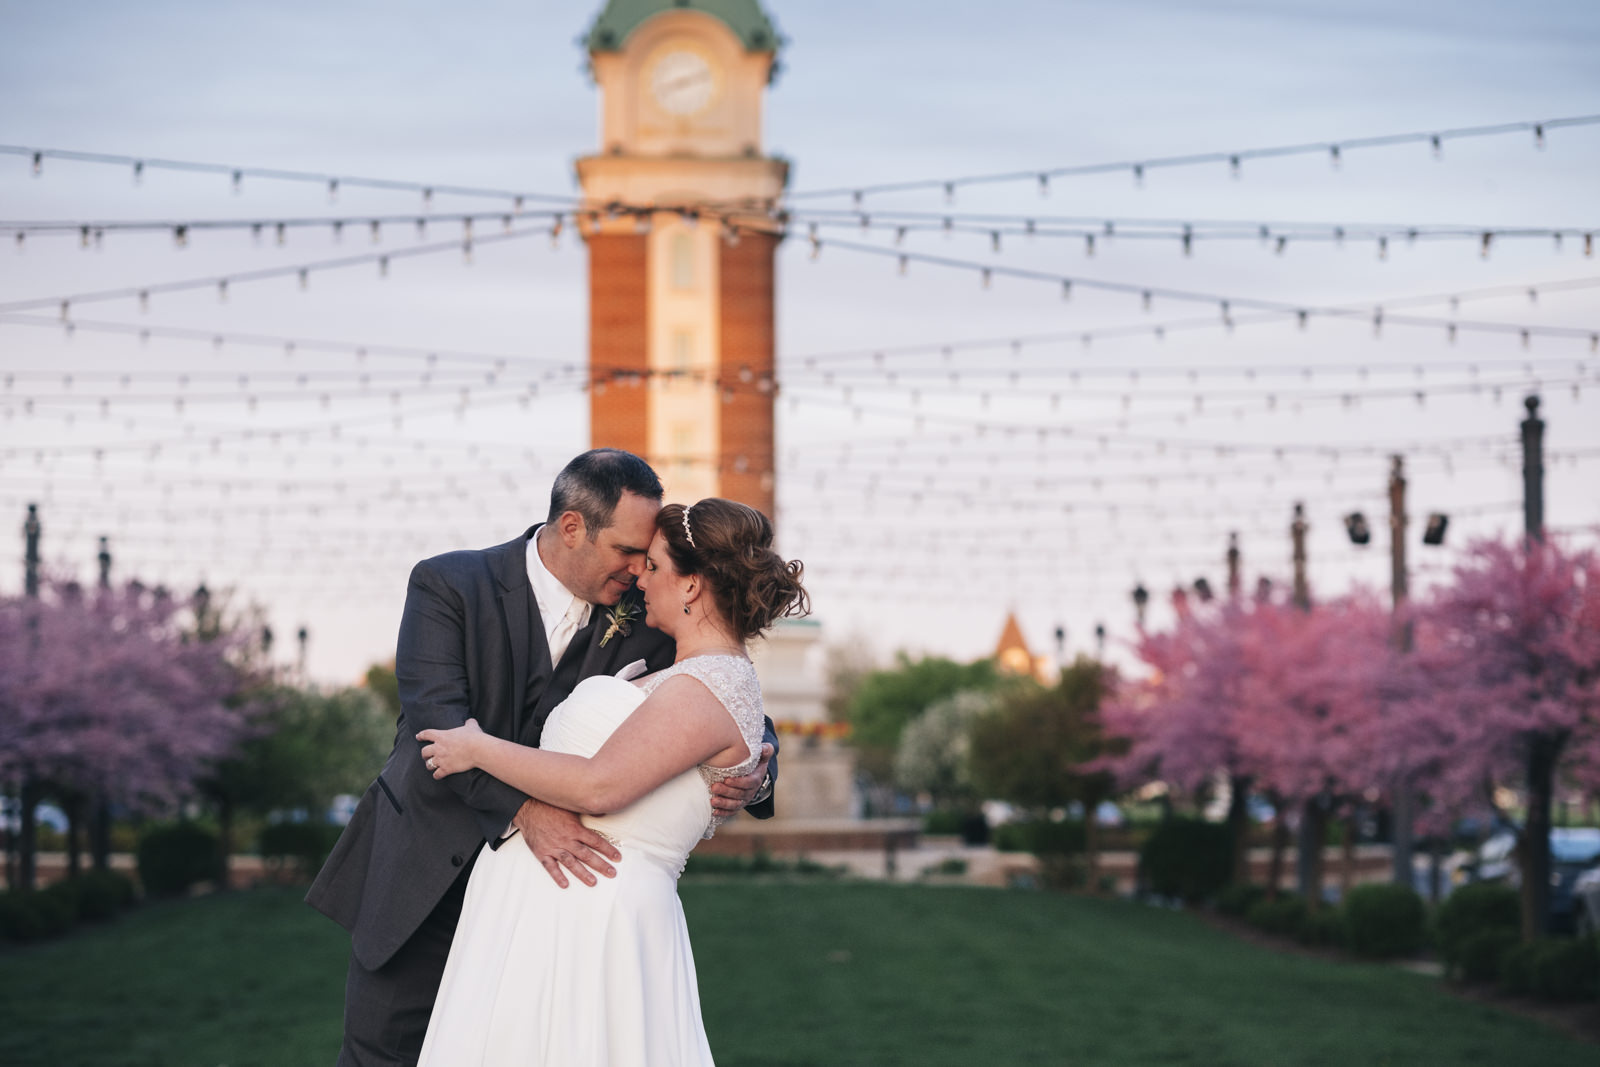 Bride and groom portrait at Levis Commons.